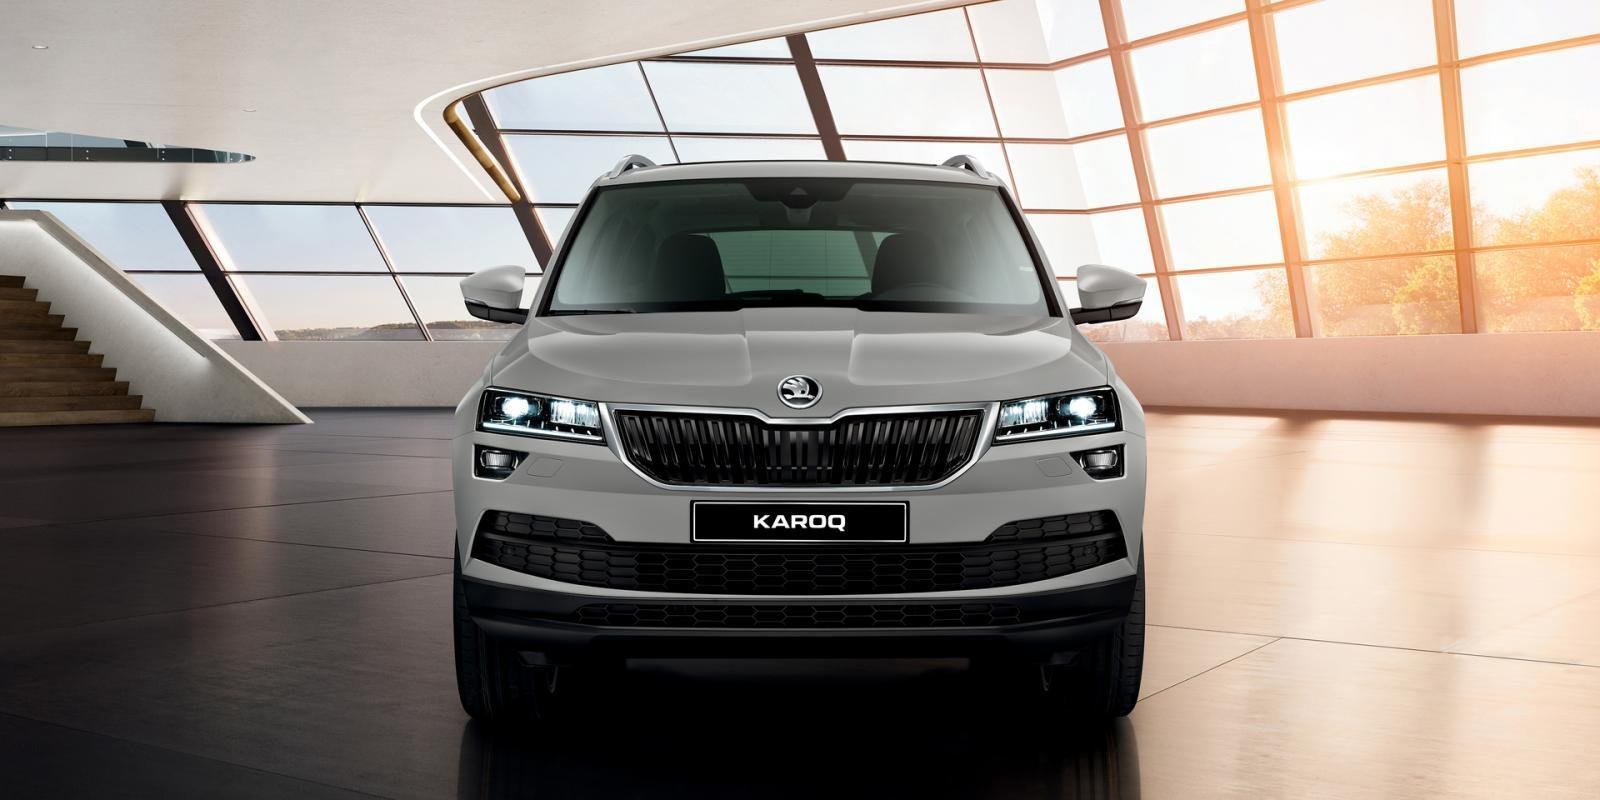 Skoda Karoq Will Be Relaunched As A Locally Assembled Model In India